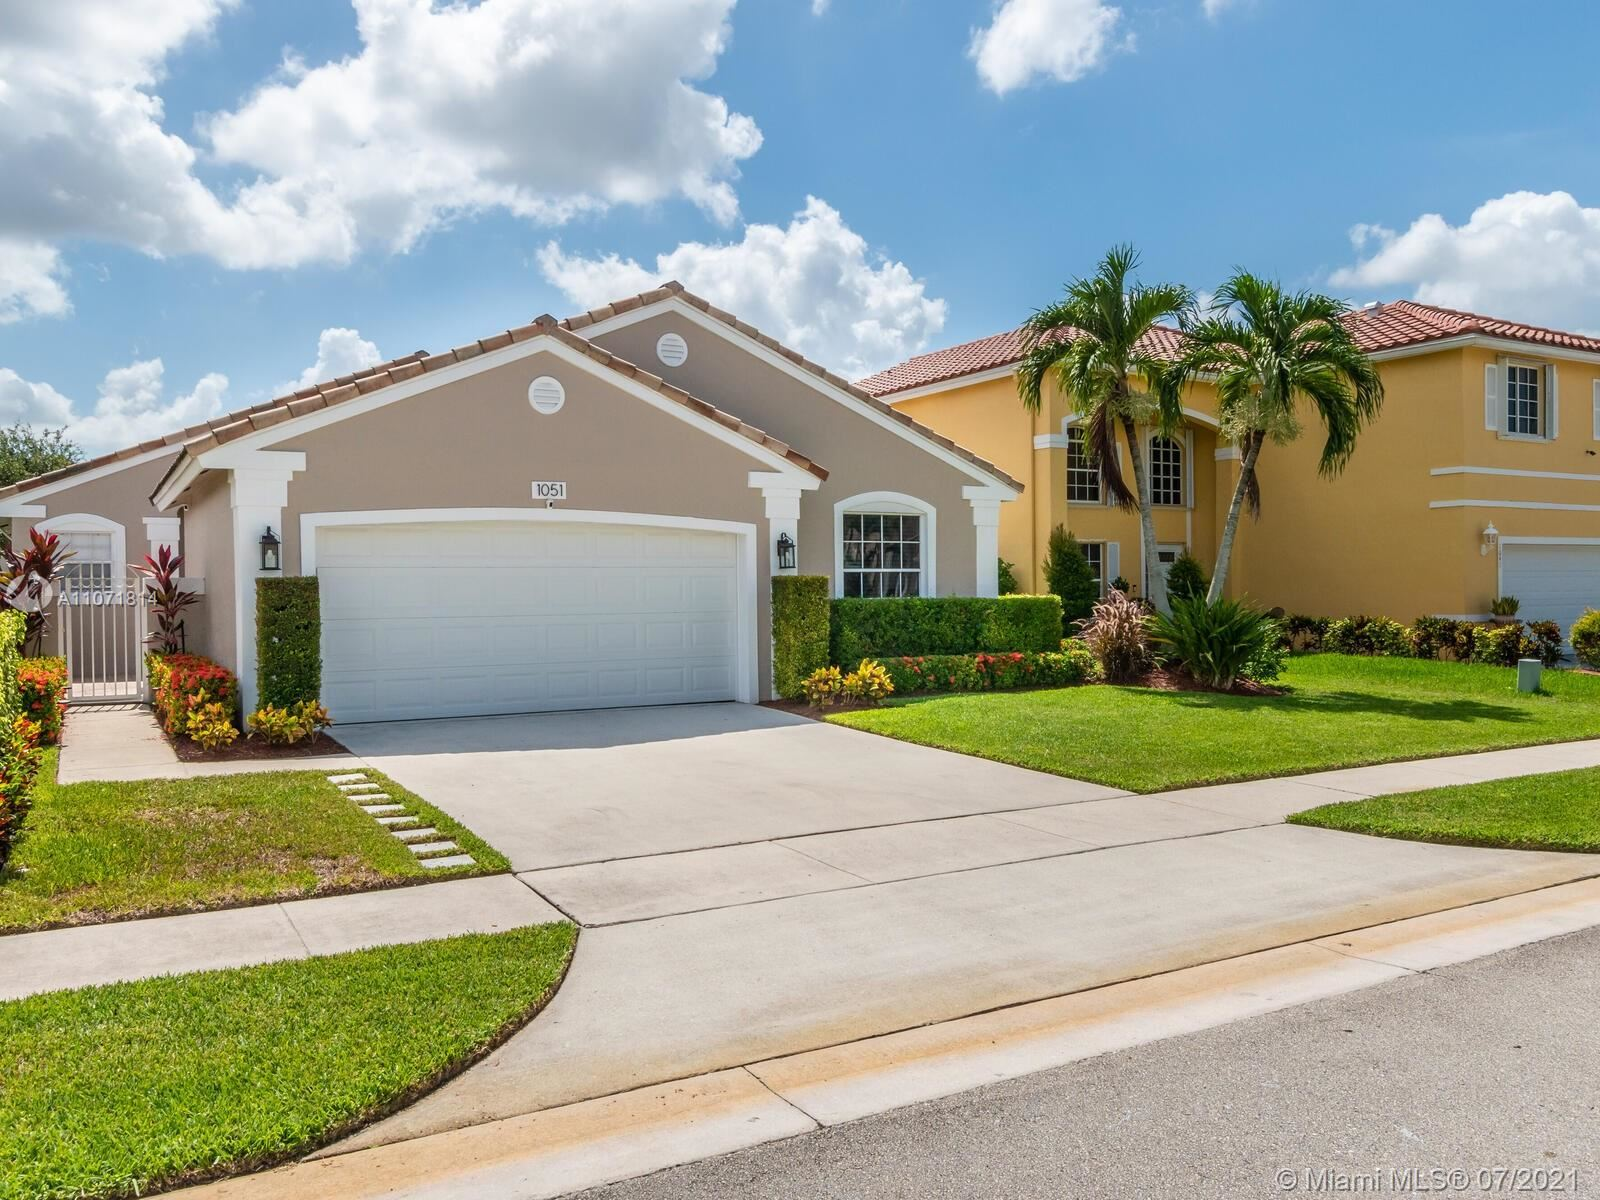 Photo of 1051 NW 189th Ave, Pembroke Pines, FL 33029 (MLS # A11071814)